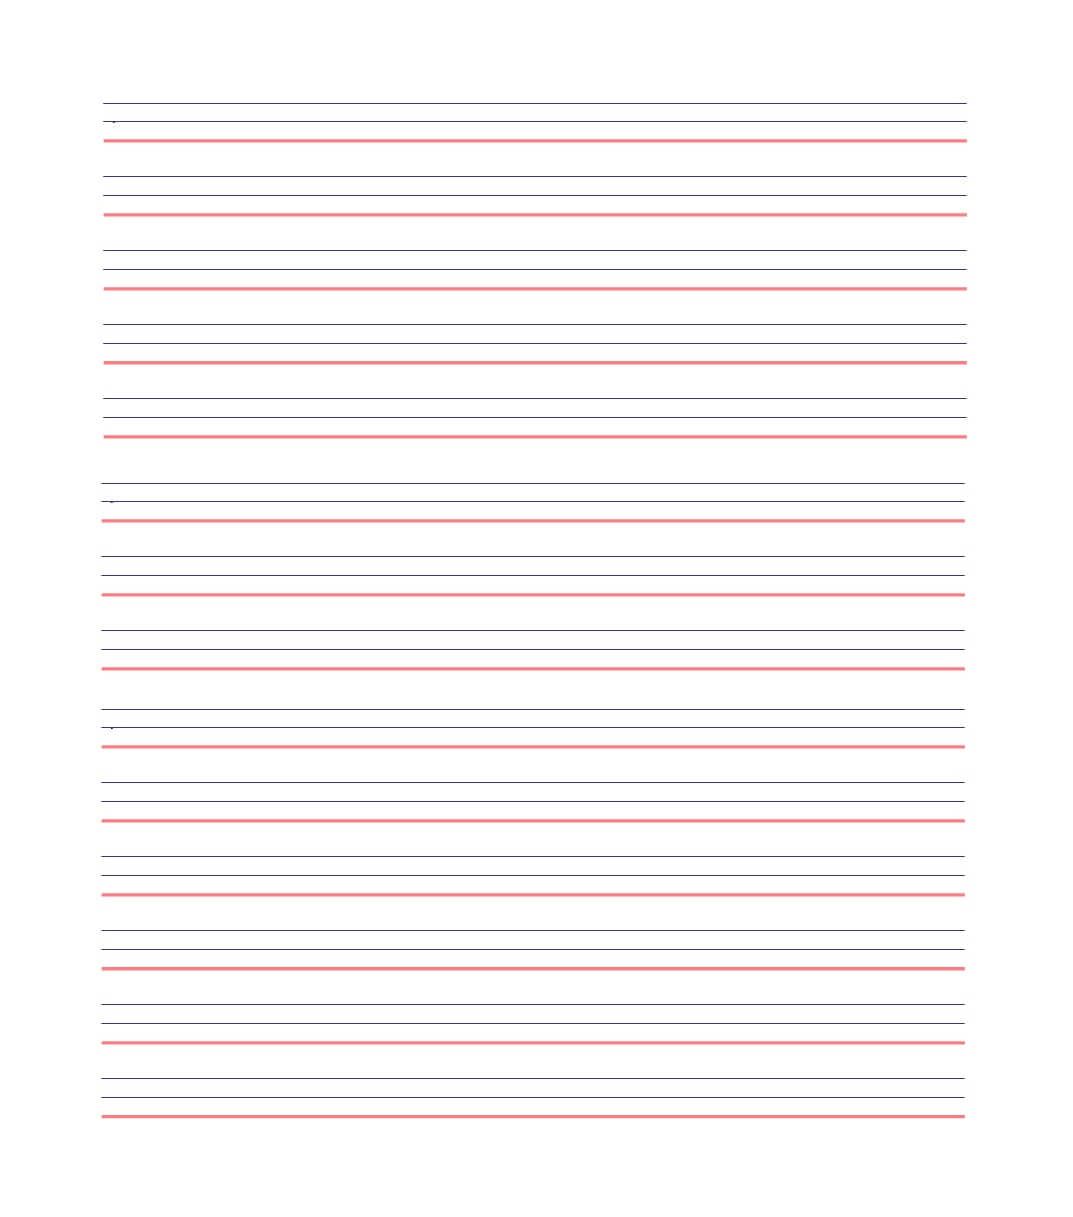 32 Printable Lined Paper Templates ᐅ Template Lab With Notebook Paper Template For Word 2010